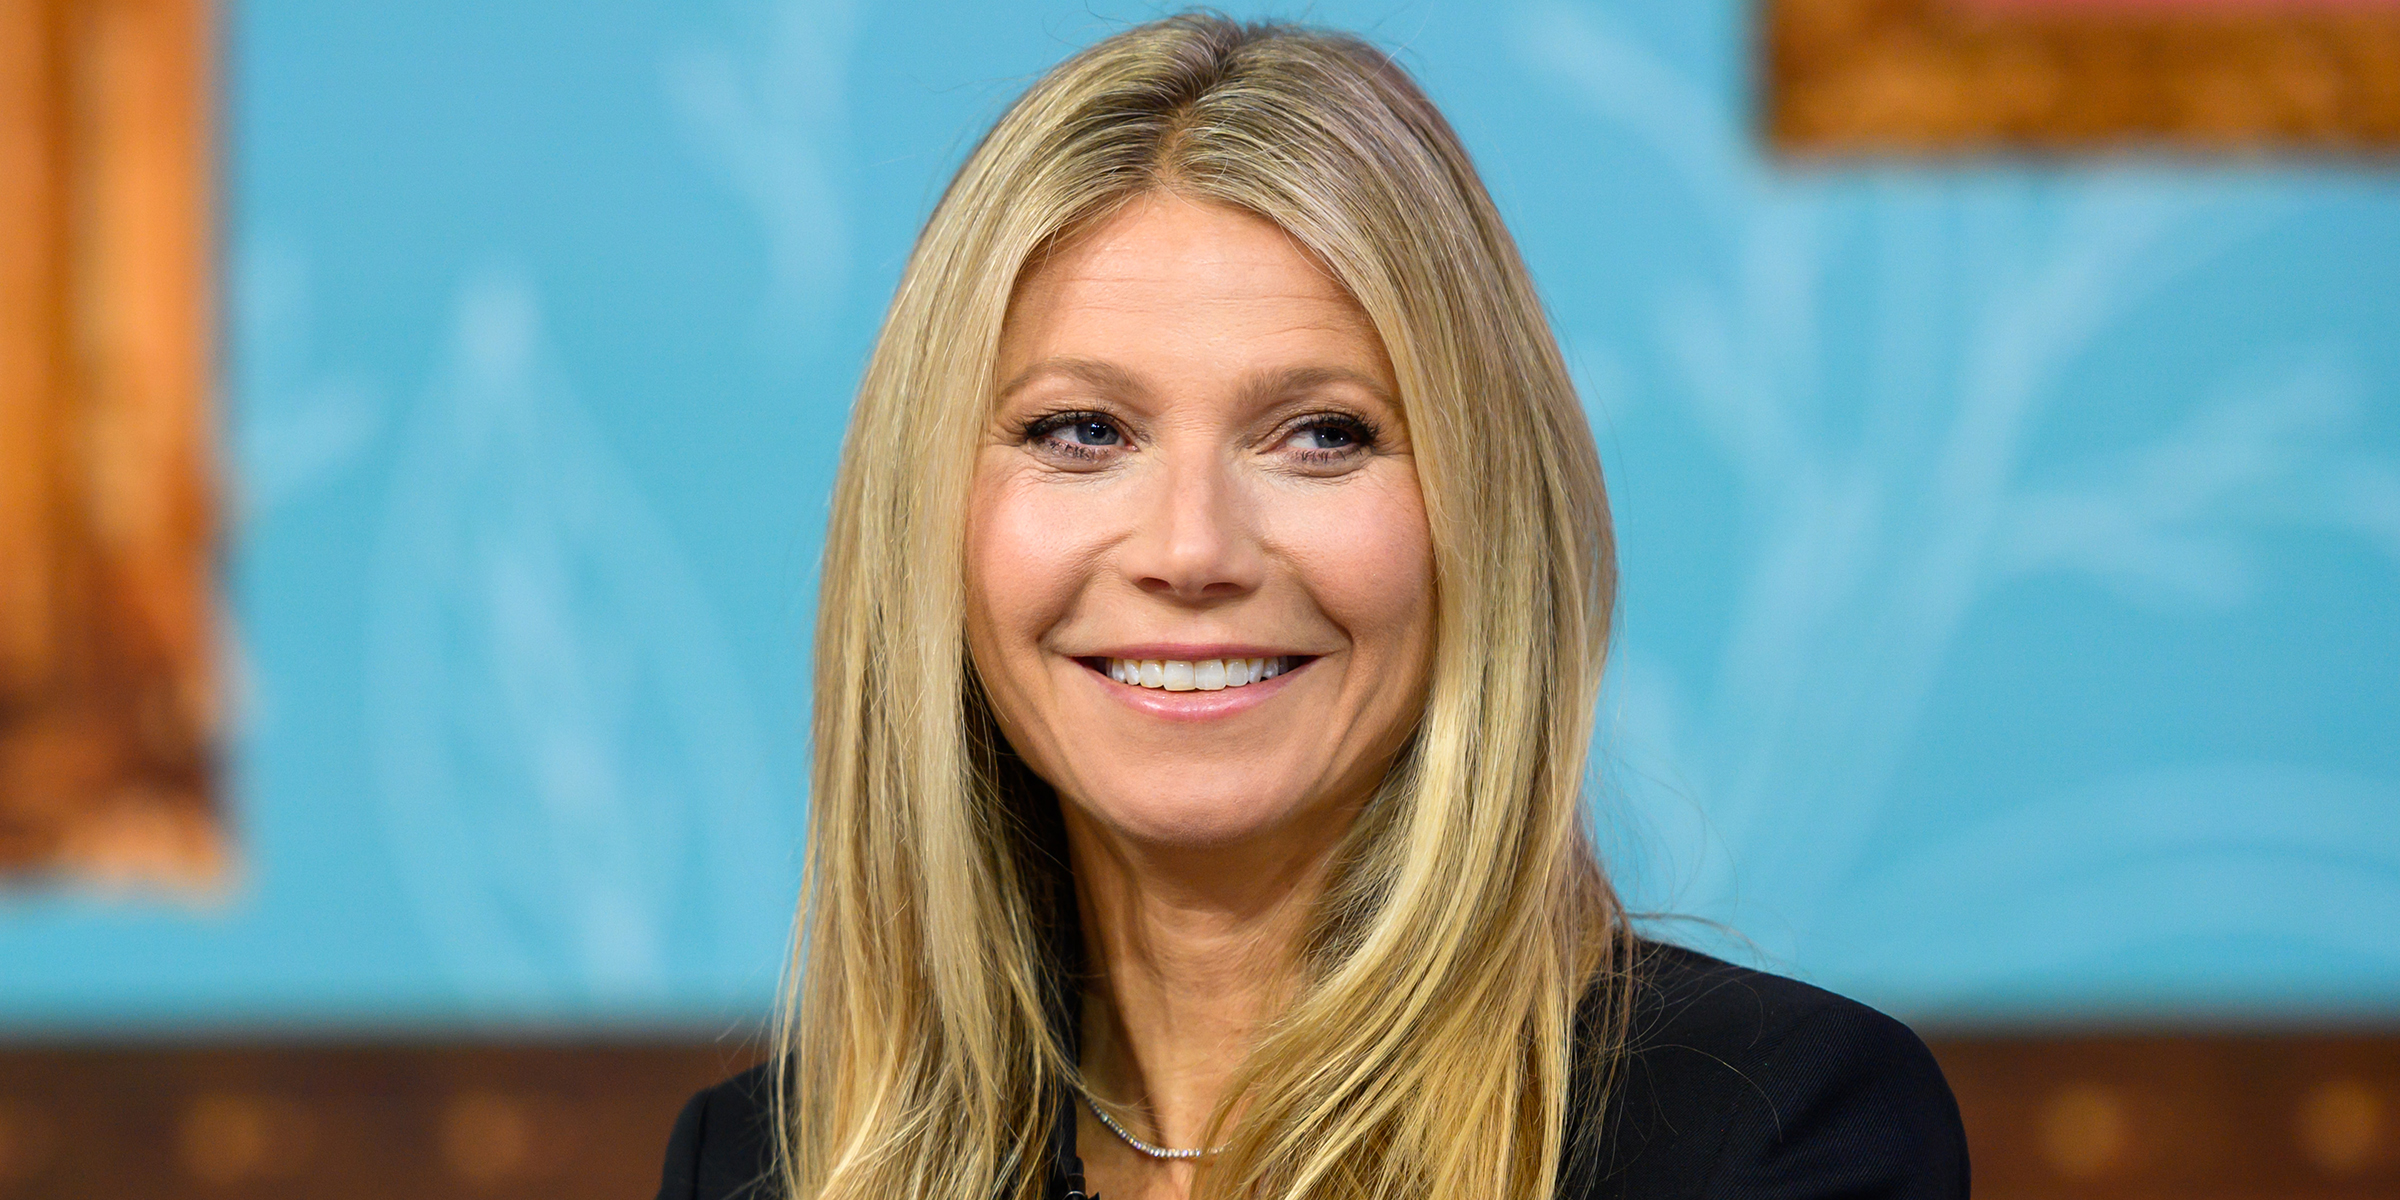 Gwyneth Paltrow: My daughter inspired me to help expose Harvey Weinstein